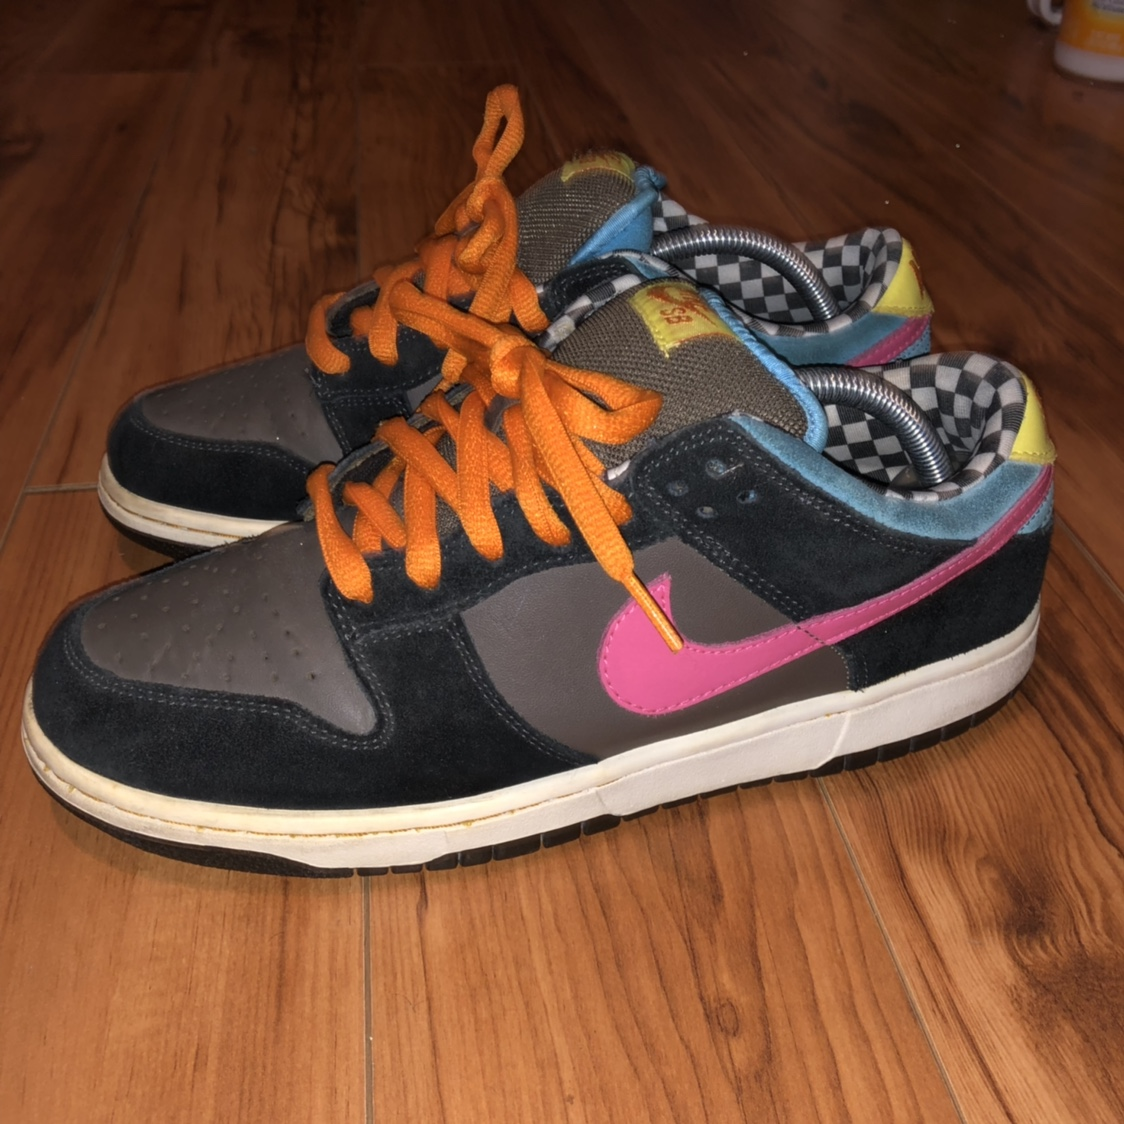 uk availability 7f60d 1d3d7 Nike SB 720 Dunk lows size 9.5. 8/10 condition. Flaw... - Depop